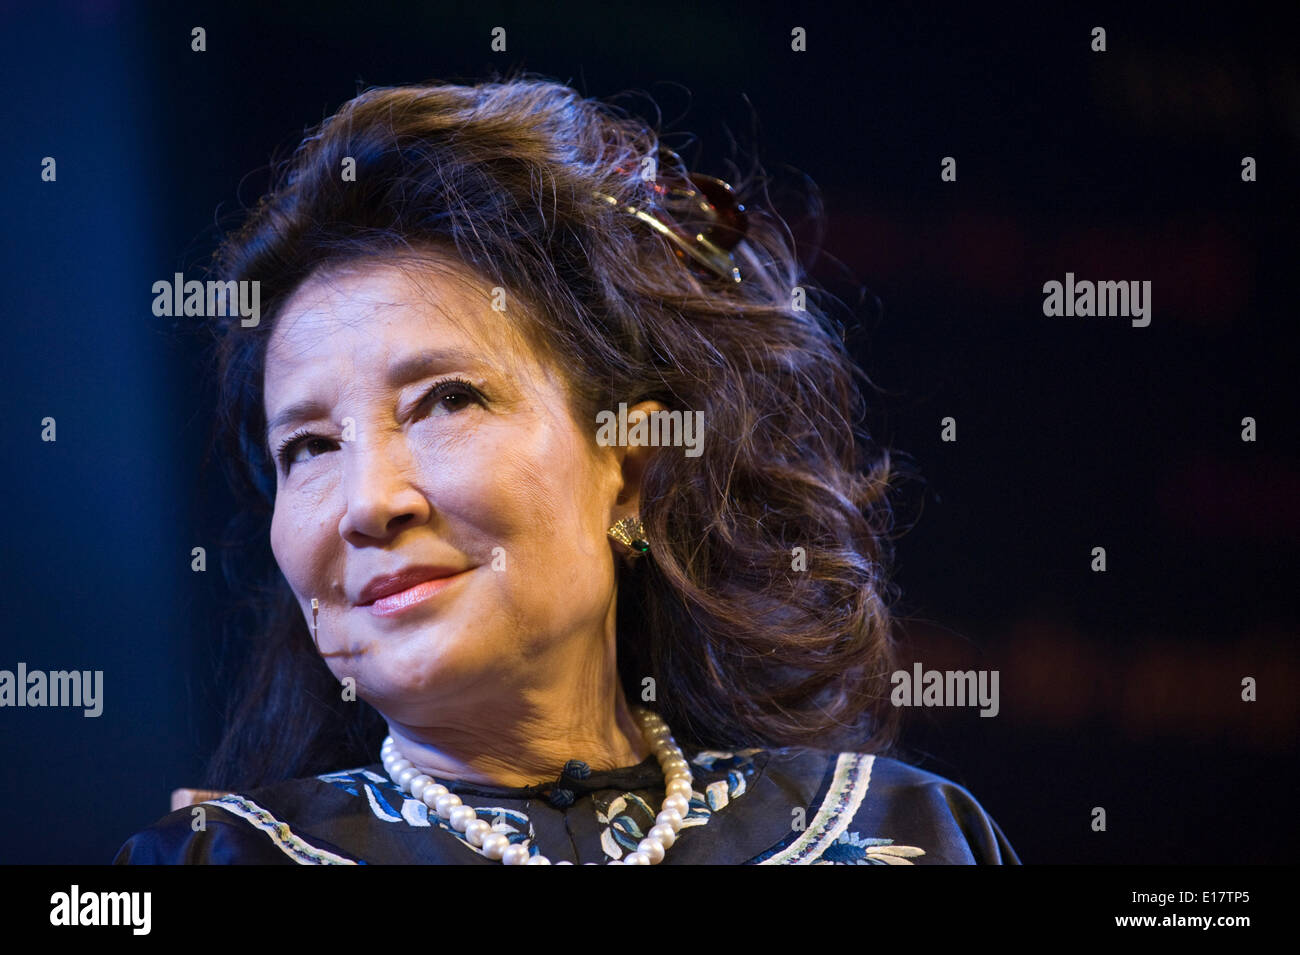 Jung Chang author speaking about the Chinese Empress Dowager Cixi at Hay Festival 2014 ©Jeff Morgan - Stock Image